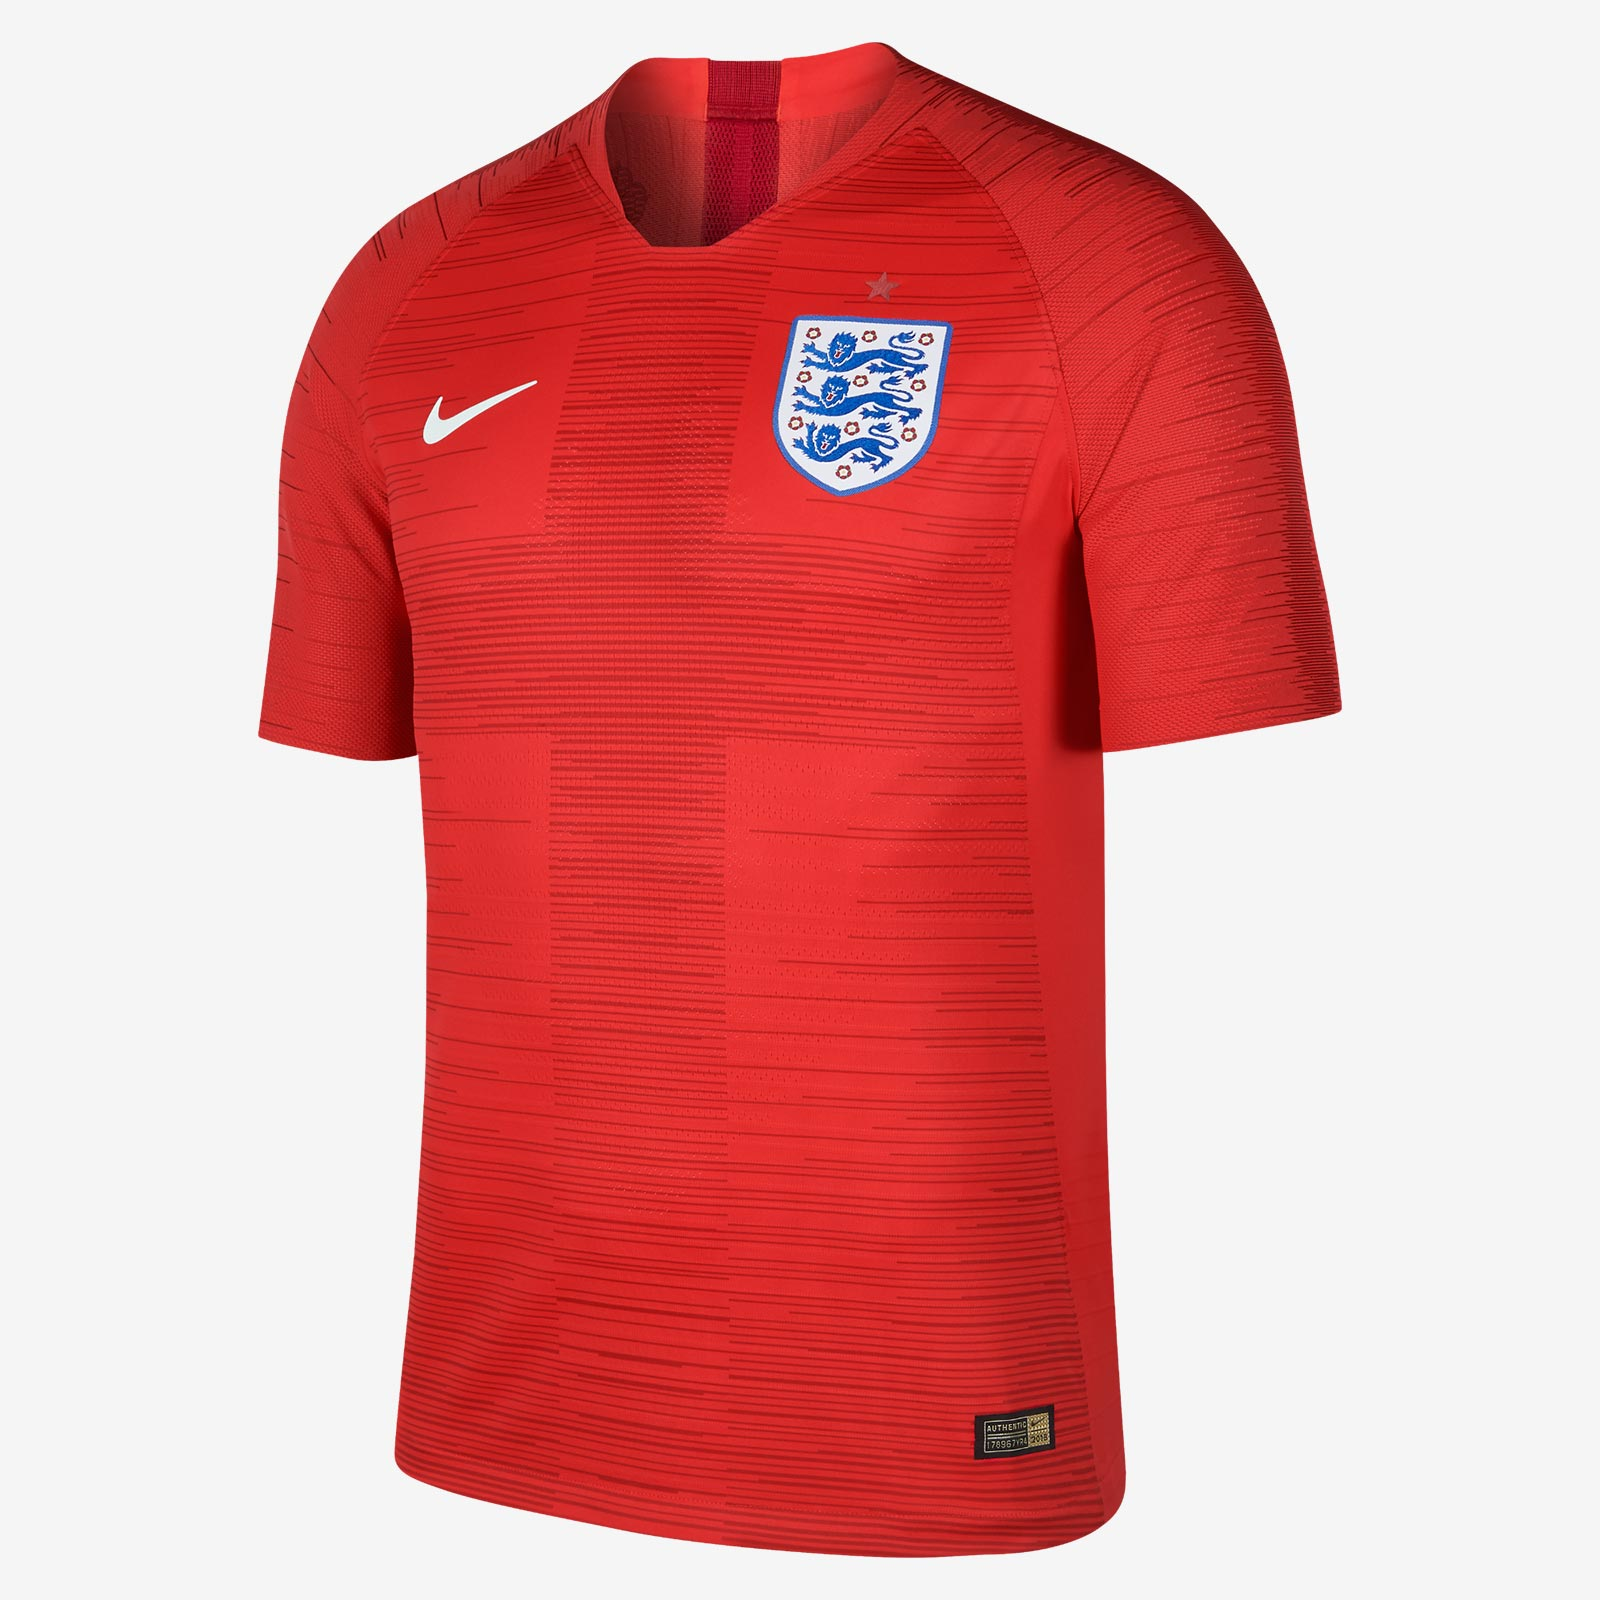 Nike england 2018 world cup away kit revealed footy for New england kit homes